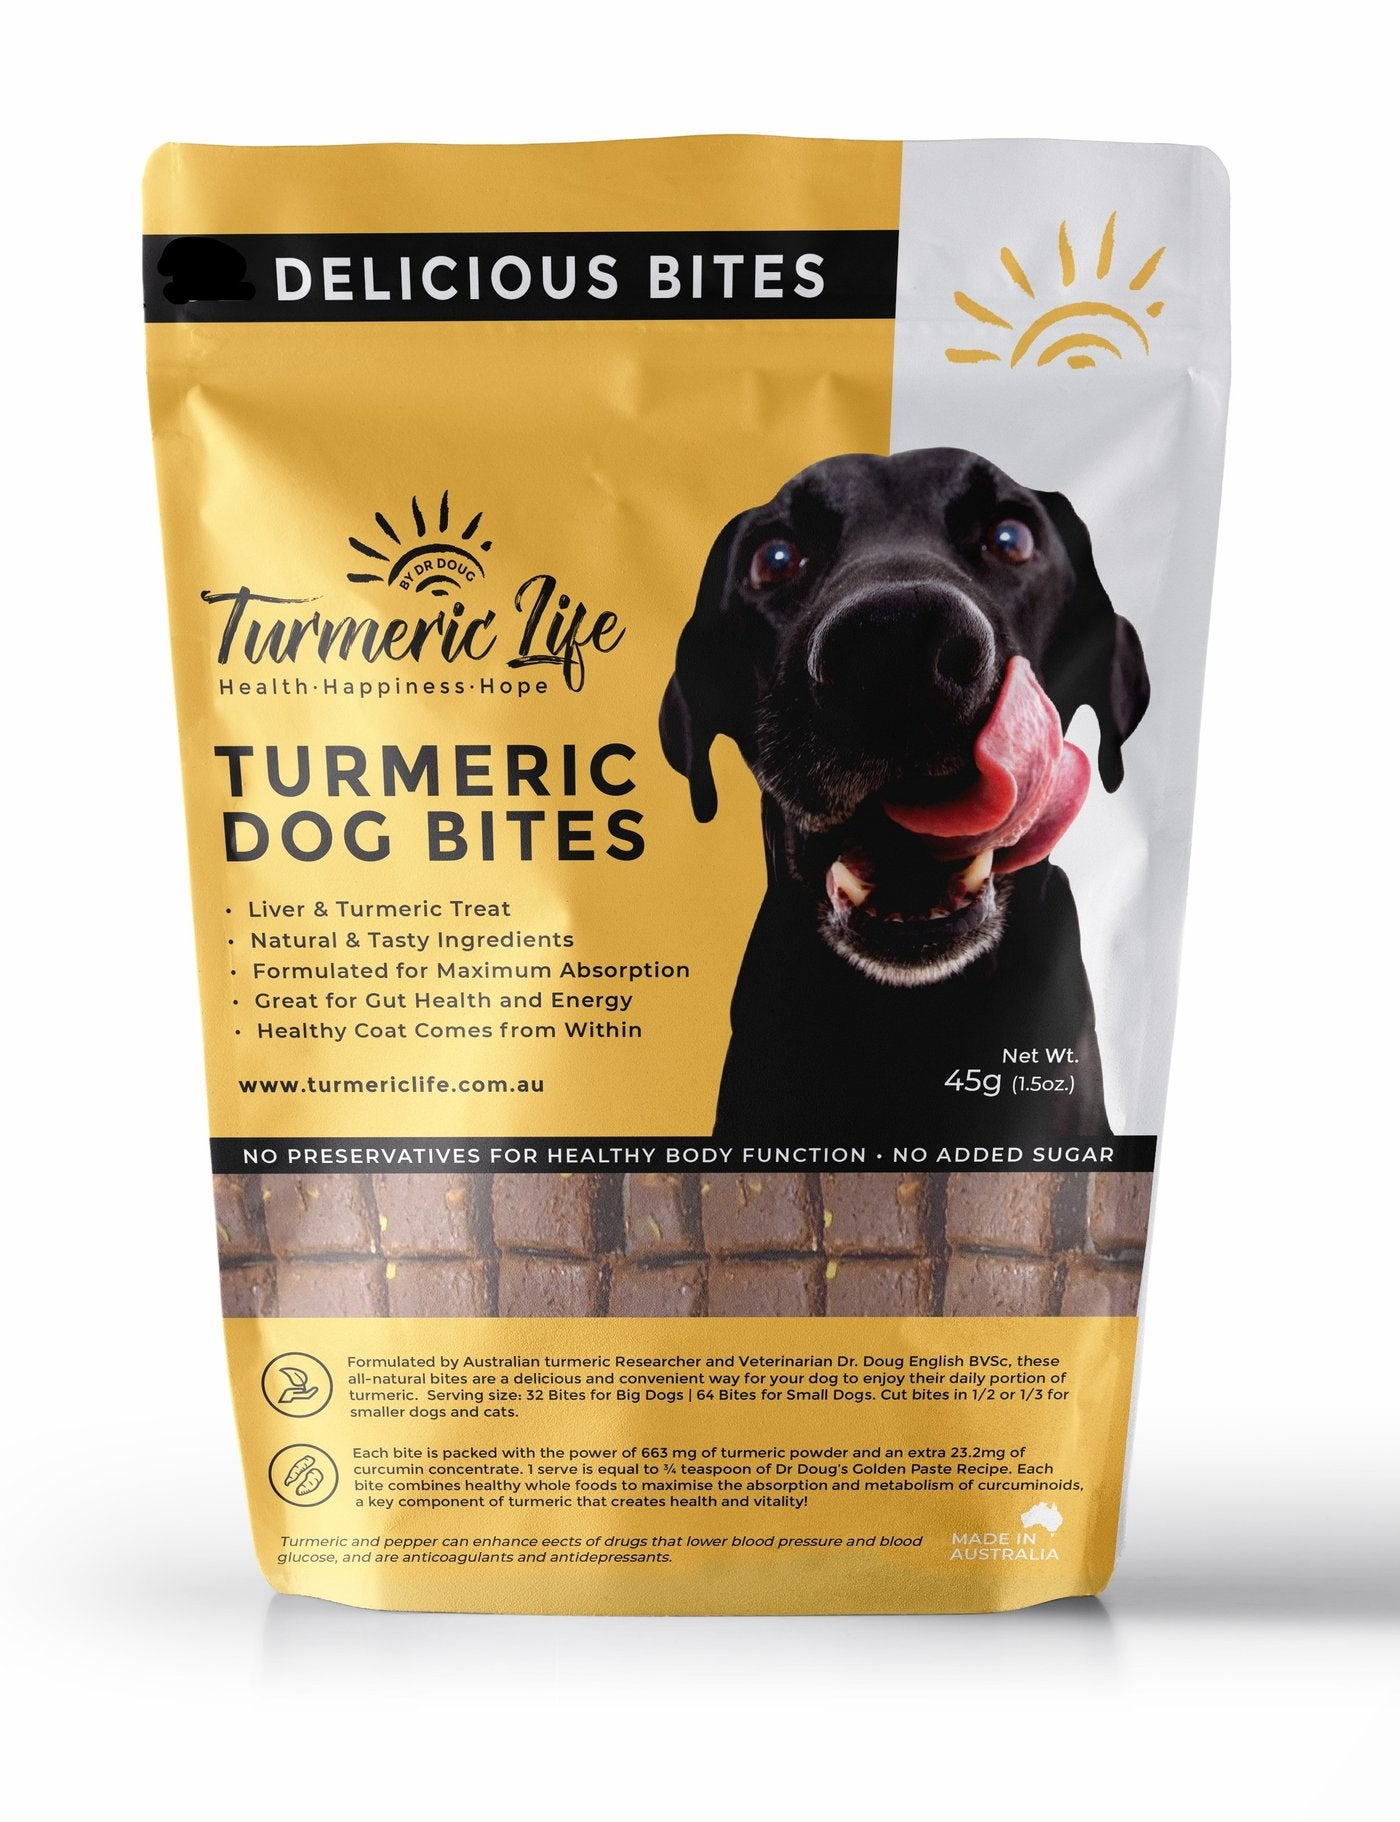 Turmeric Dog and Pet Bites